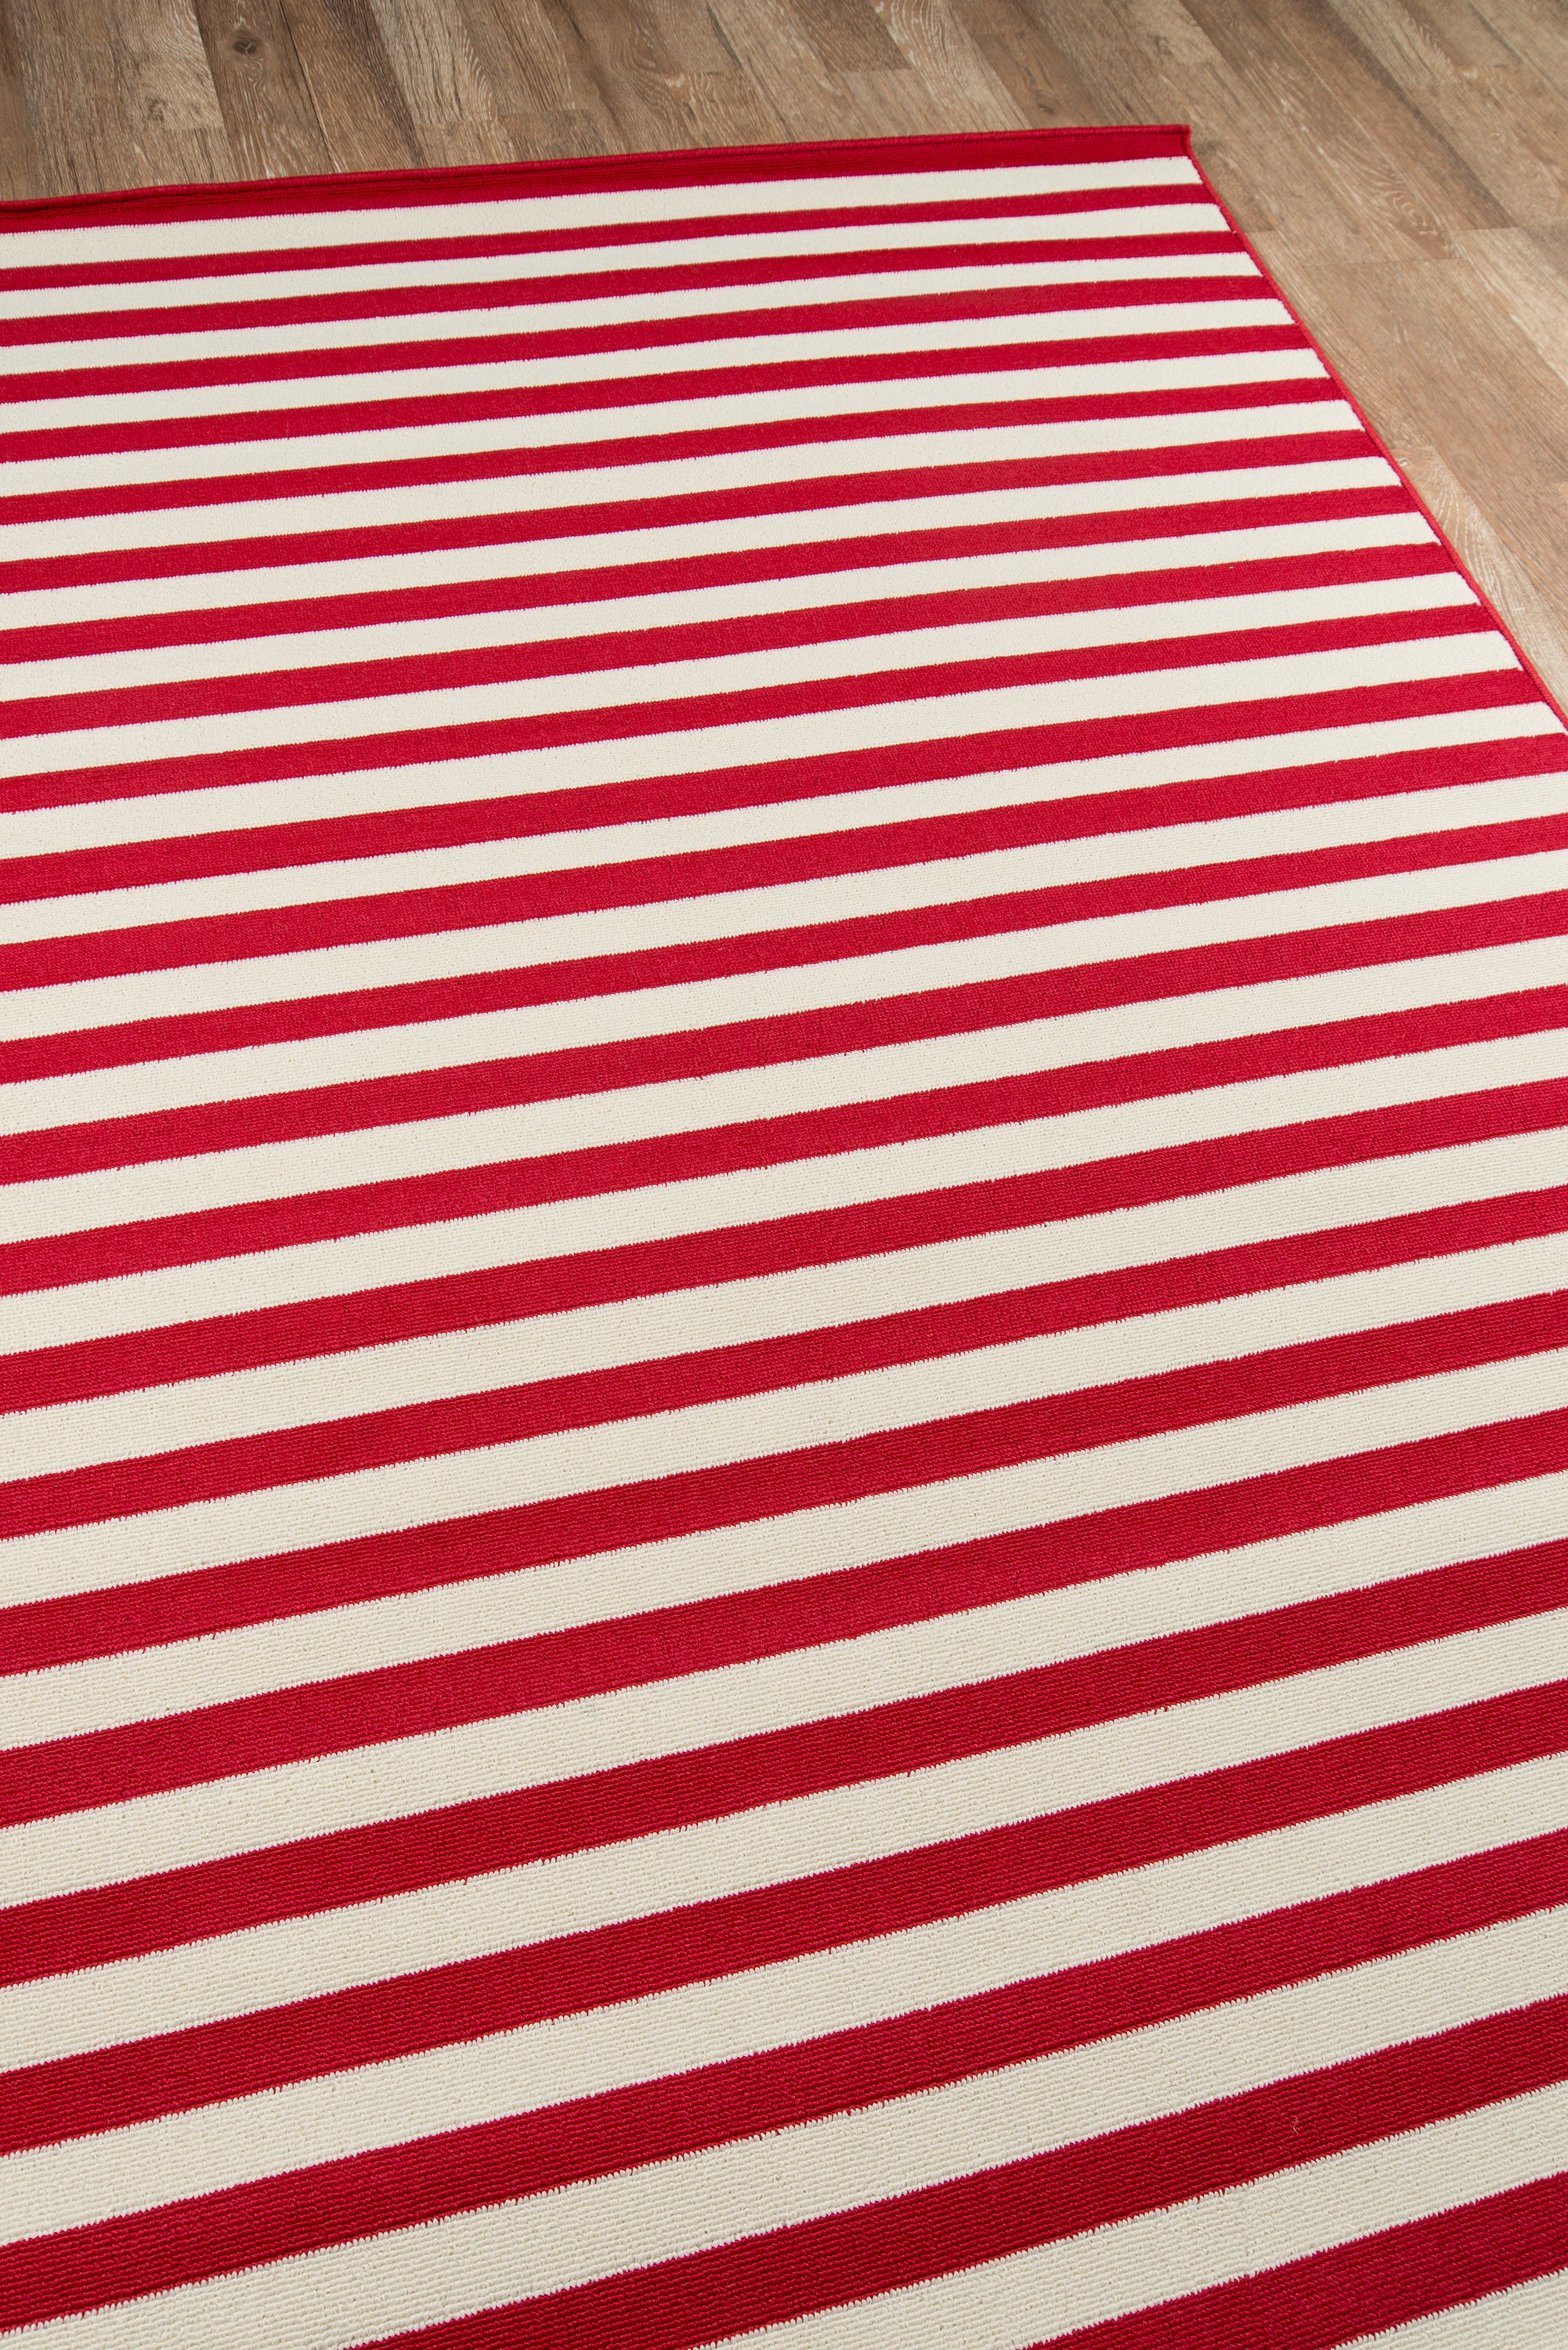 Rectangle Red Striped Machine Made Synthetics Contemporary recommended for Kitchen, Bedroom, Bathroom, Outdoor, Dining Room, Office, Hallway, Living Room